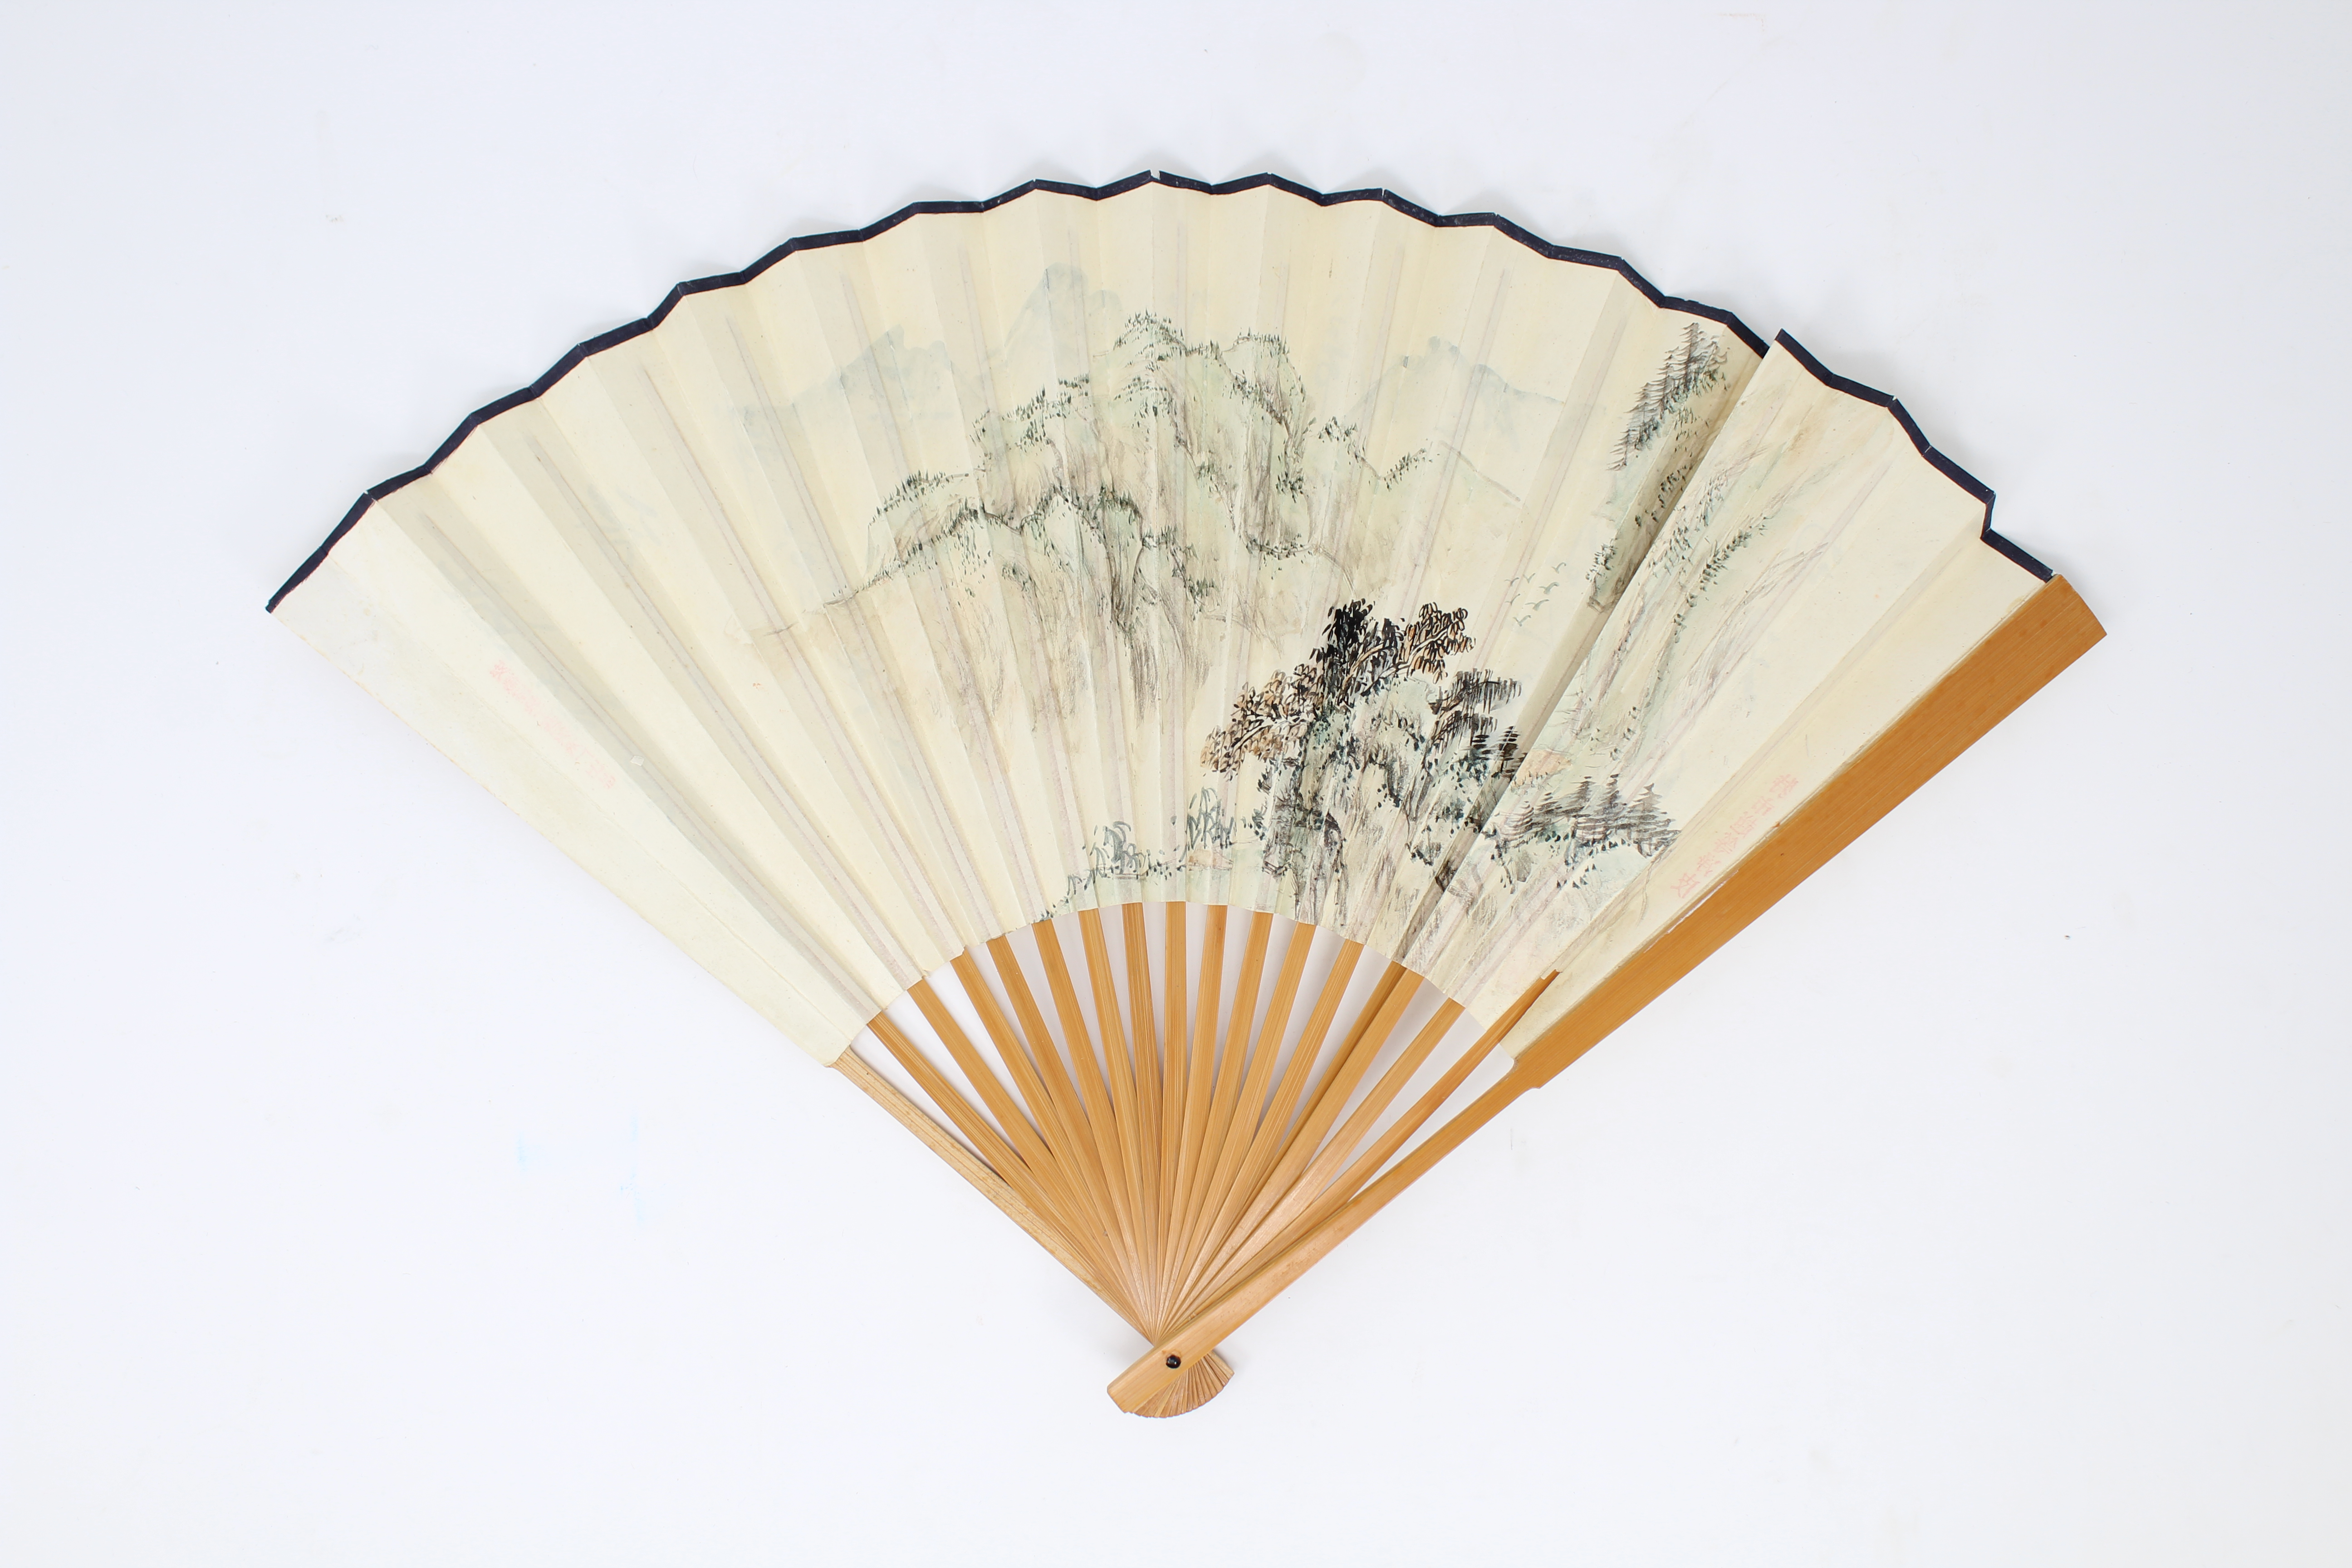 Lot 286 - Chinese Ink/Watercolor, Fan. Signed